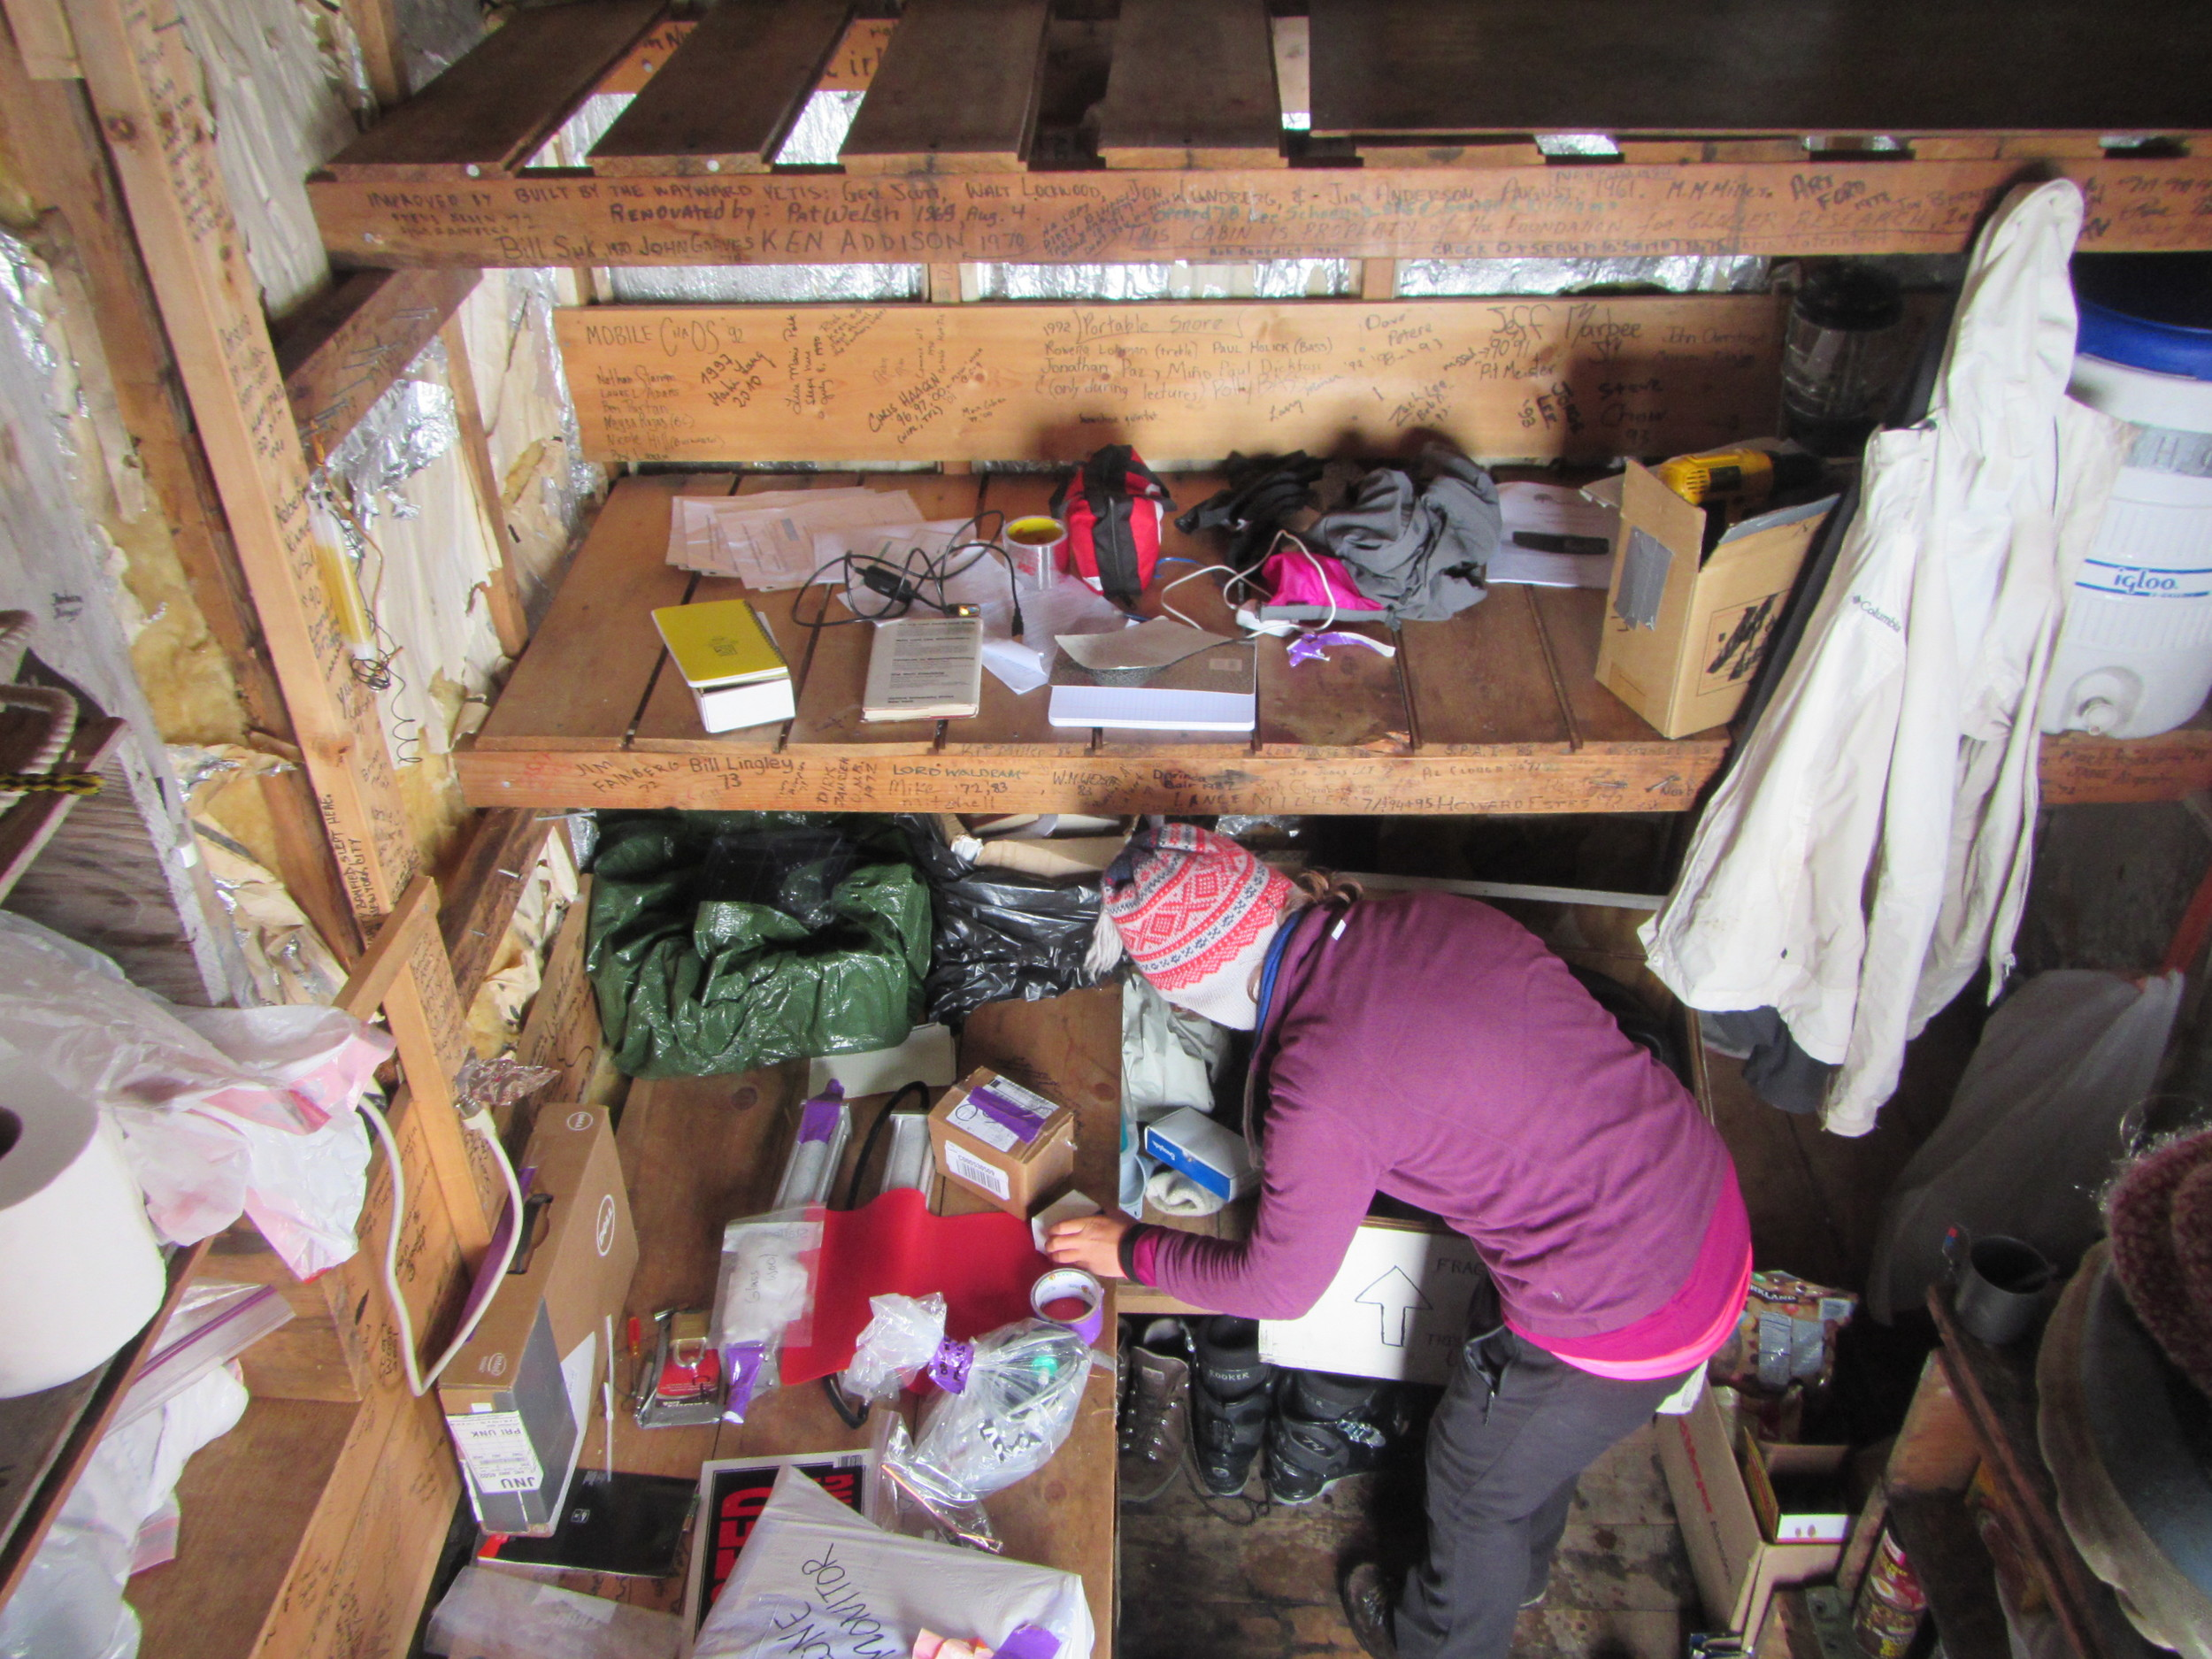 Packing up Camp 9 after the generator died.  photo by Gillian Rooker